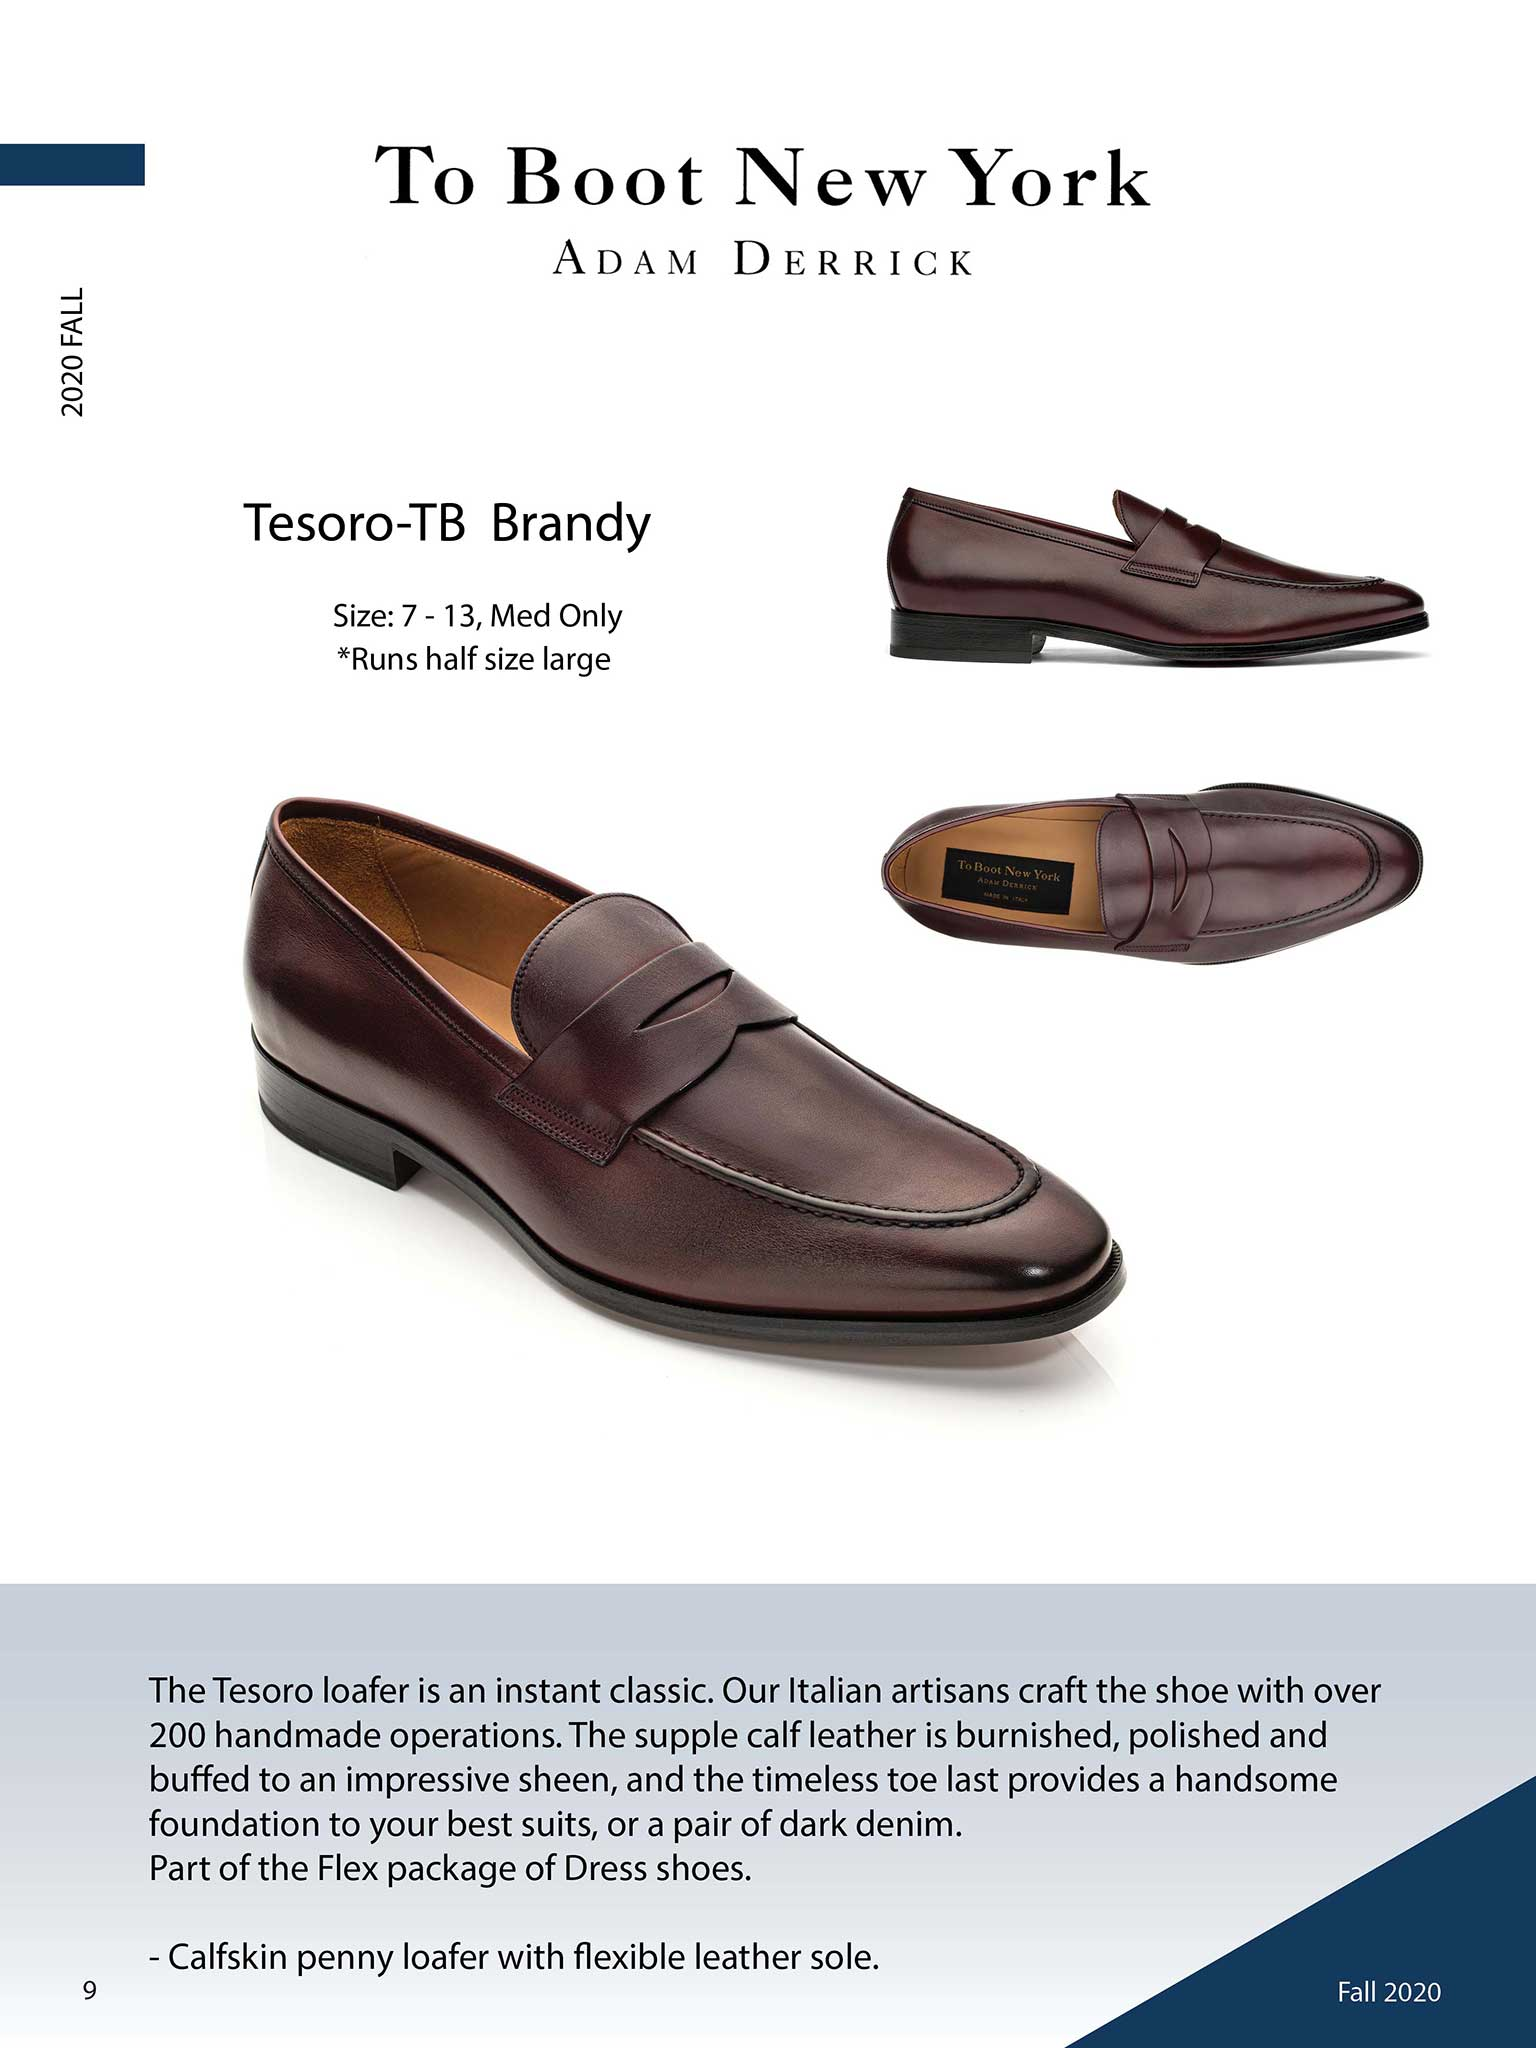 Tesoro in Brandy by To Boot New York